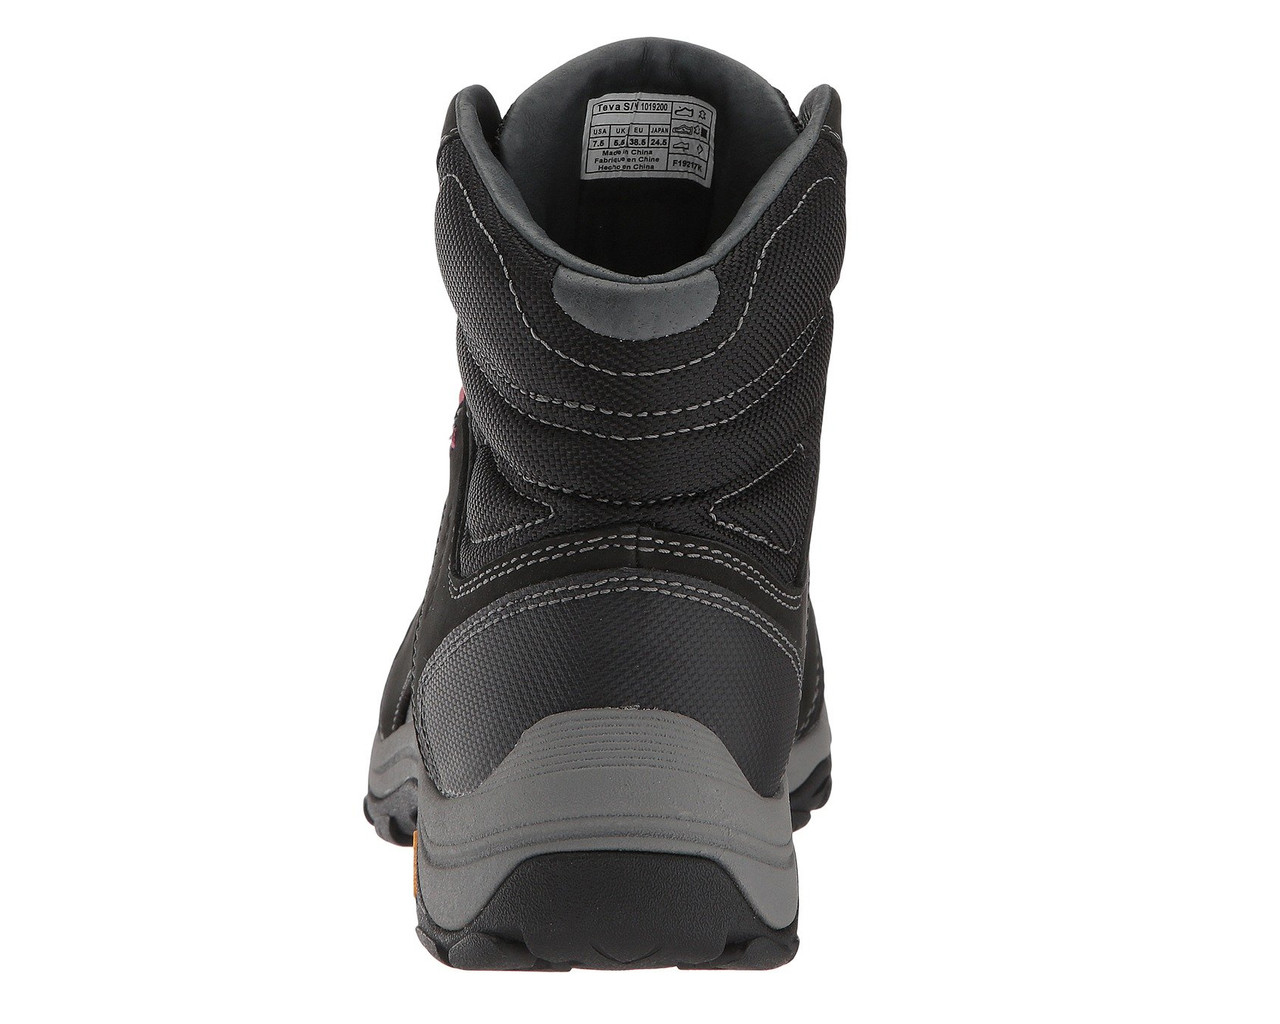 e4b1a2163 Teva Women s Montara III Boot Event  1019200 Black